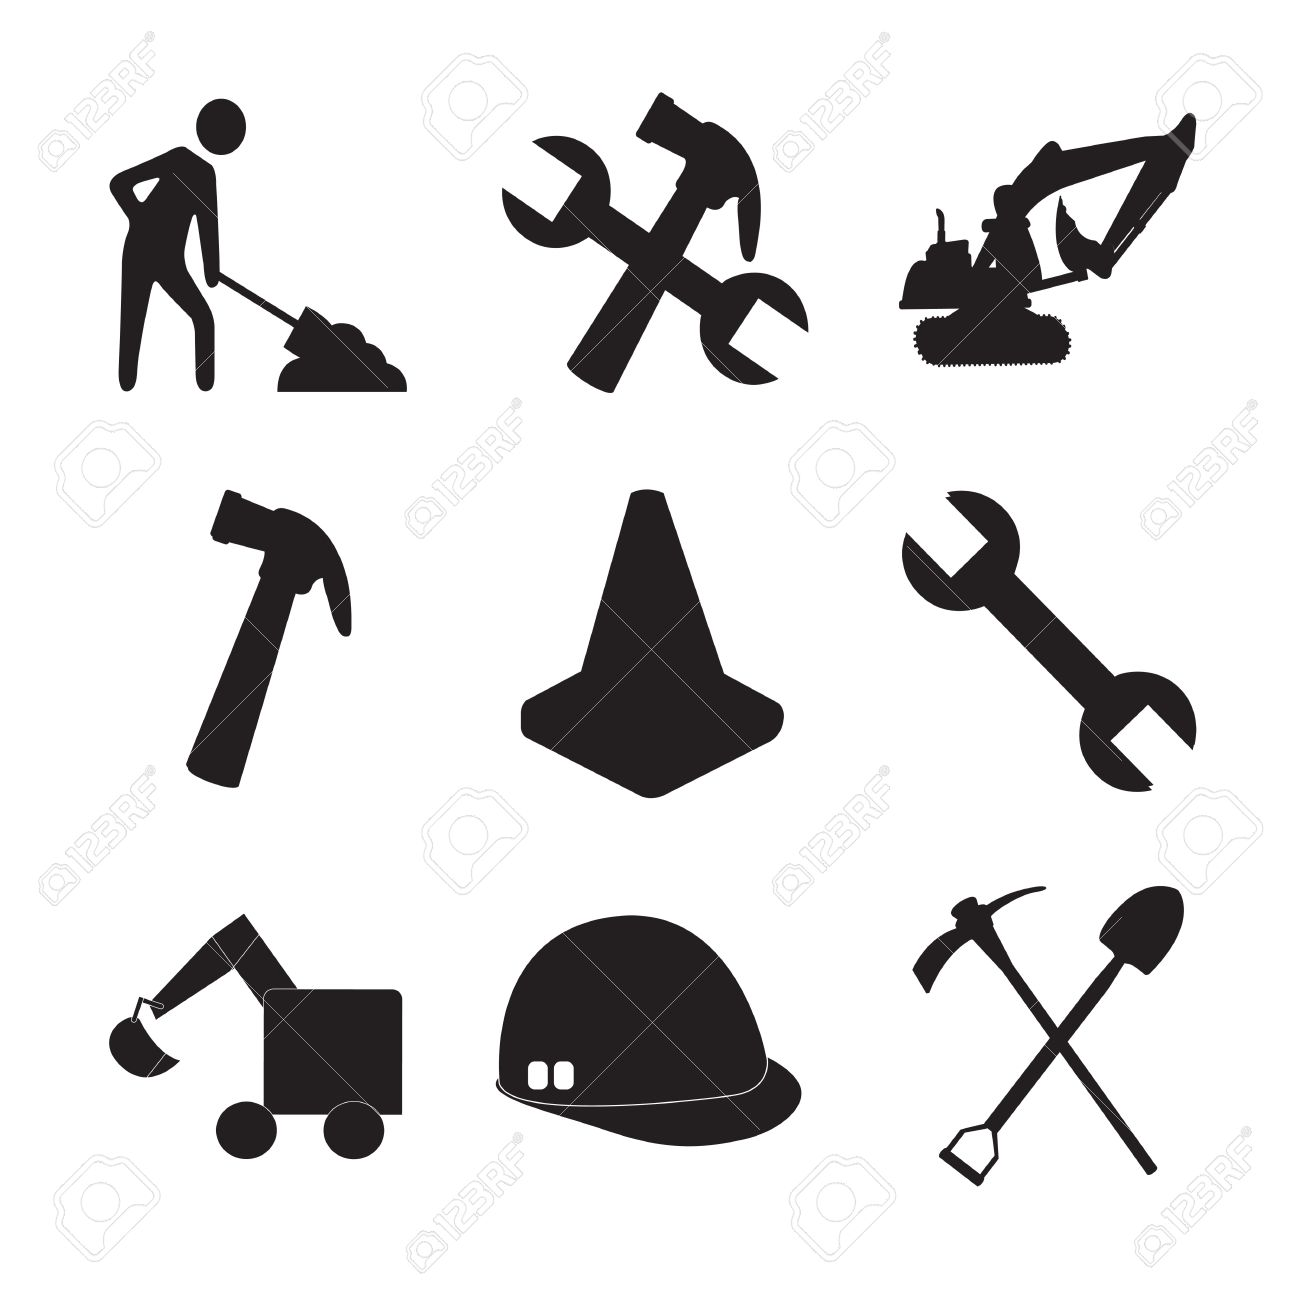 Construction tools silhouettes and a man working royalty free construction tools silhouettes and a man working stock vector 15888760 biocorpaavc Images